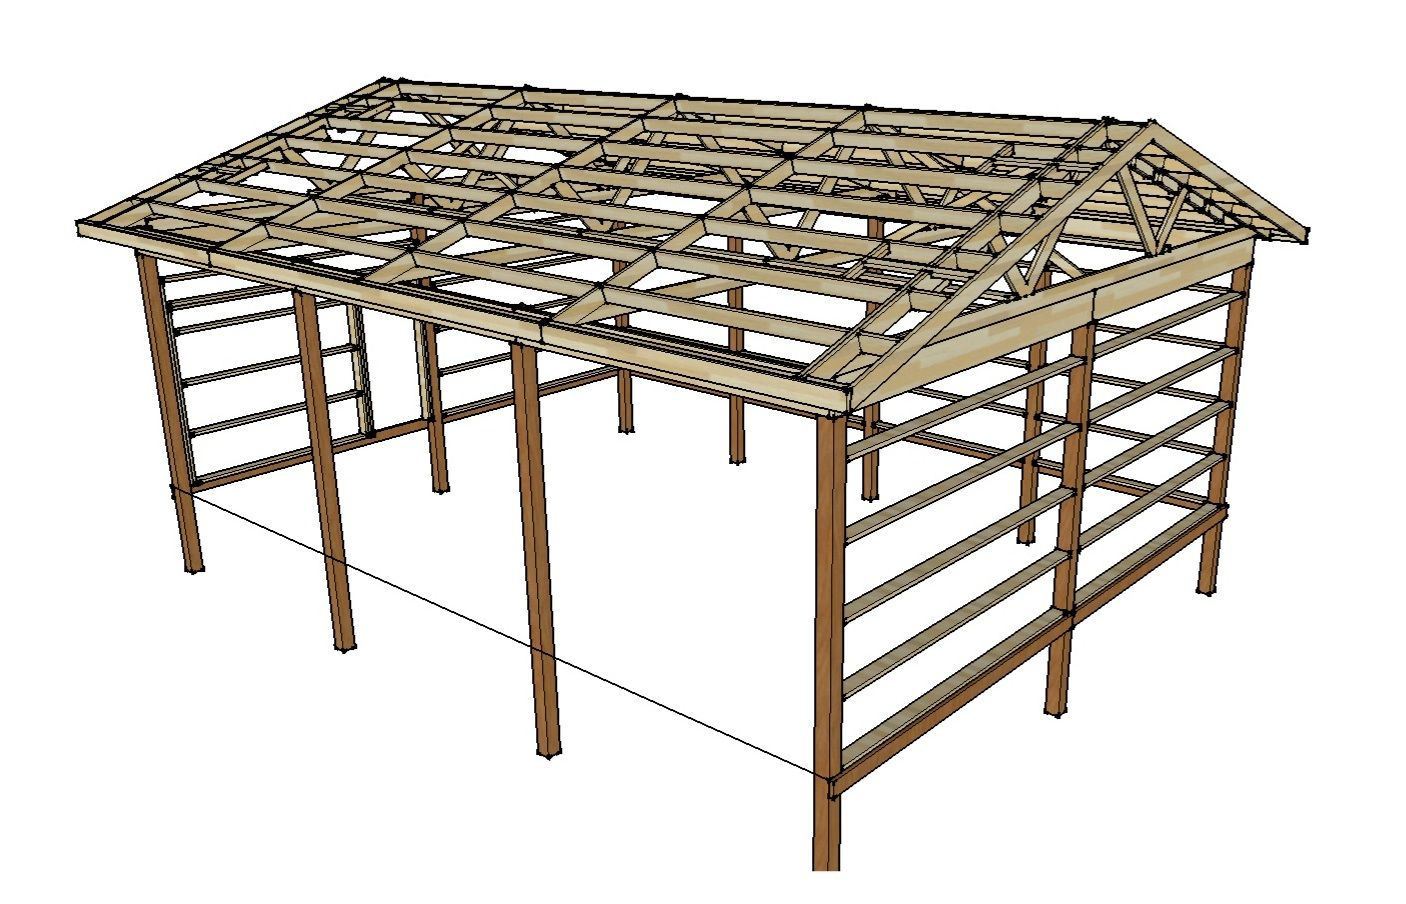 Pole barn plans and materials redneck diy outdoor for Pole barn building plans